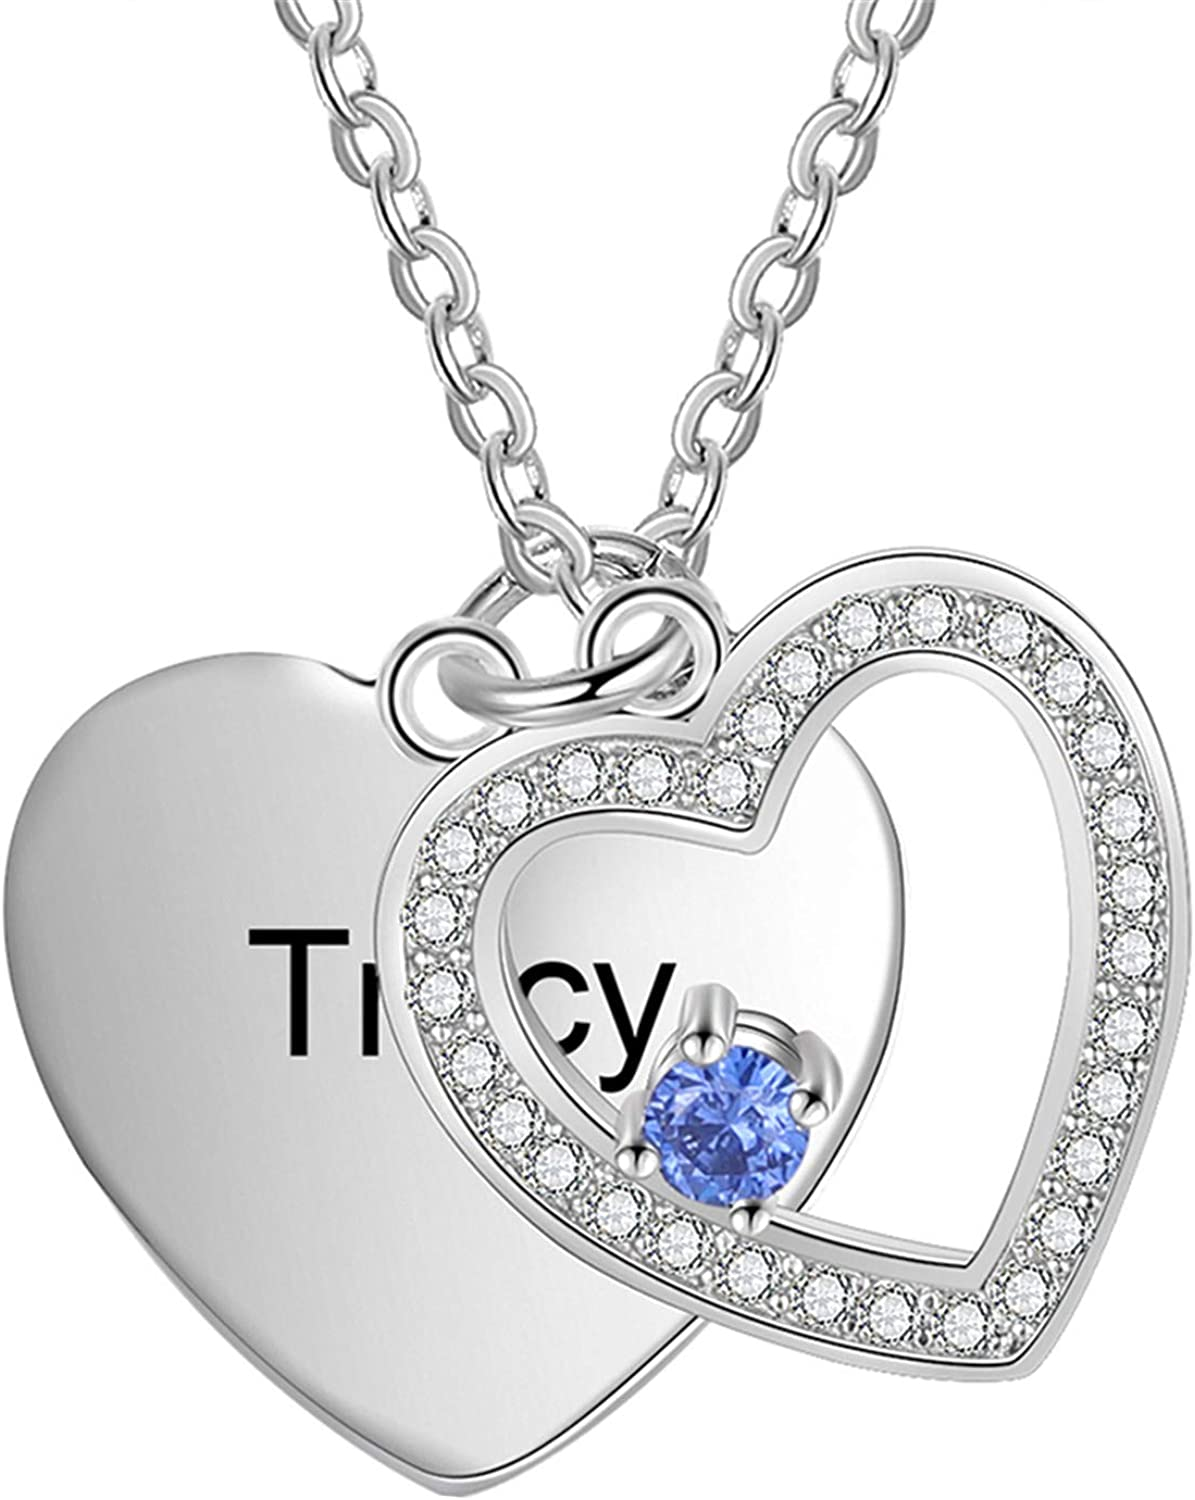 Personalized Name Necklace Christmas Gifts for her Personalized Jewelry Gift Custom Zircon Necklace Necklace for Women